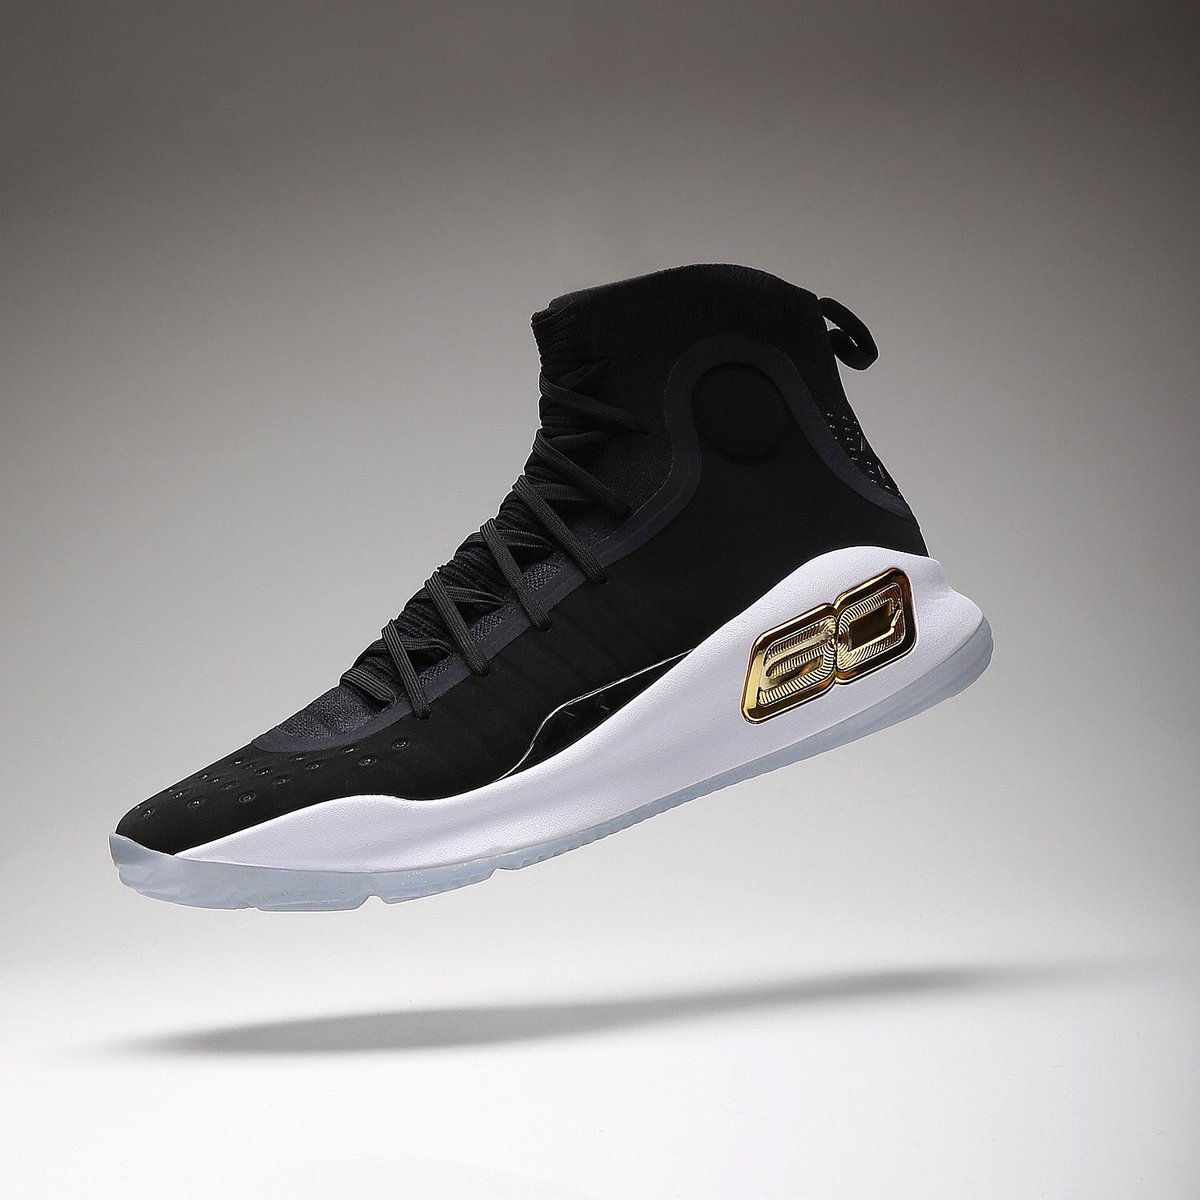 c8dee0ff2078 lonzo is wearing this under armour curry 4 finals pe made for steph curry  literally shot